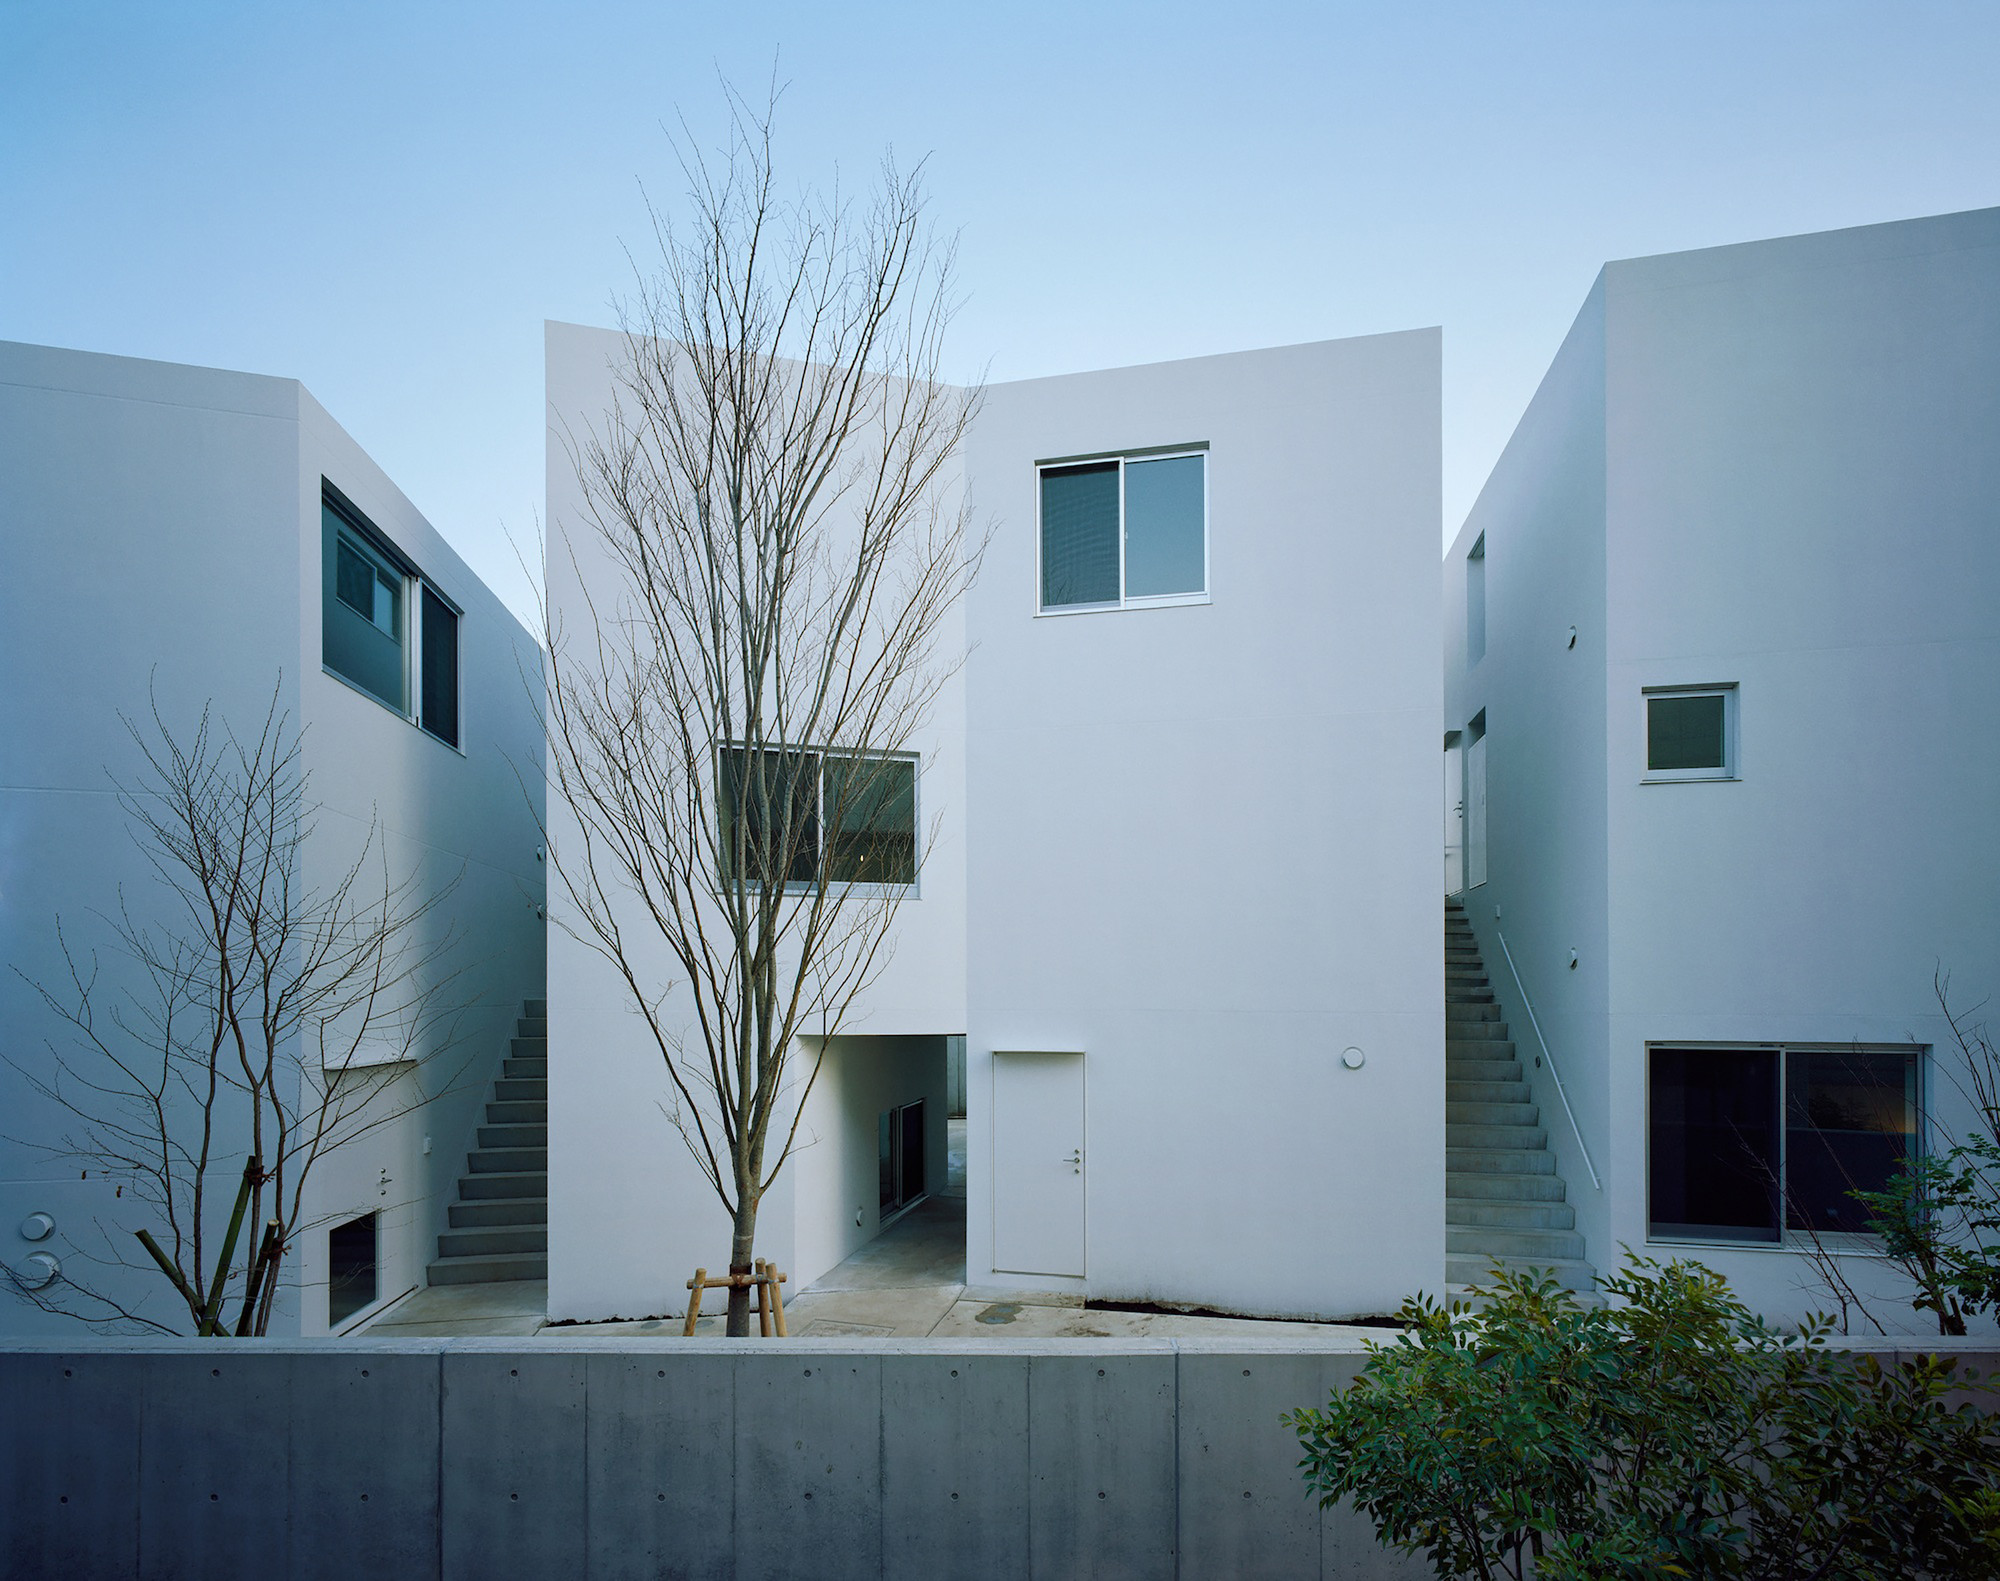 Kaminoge House / Naoya Kawabe Architect & Associates, © Takumi Ota